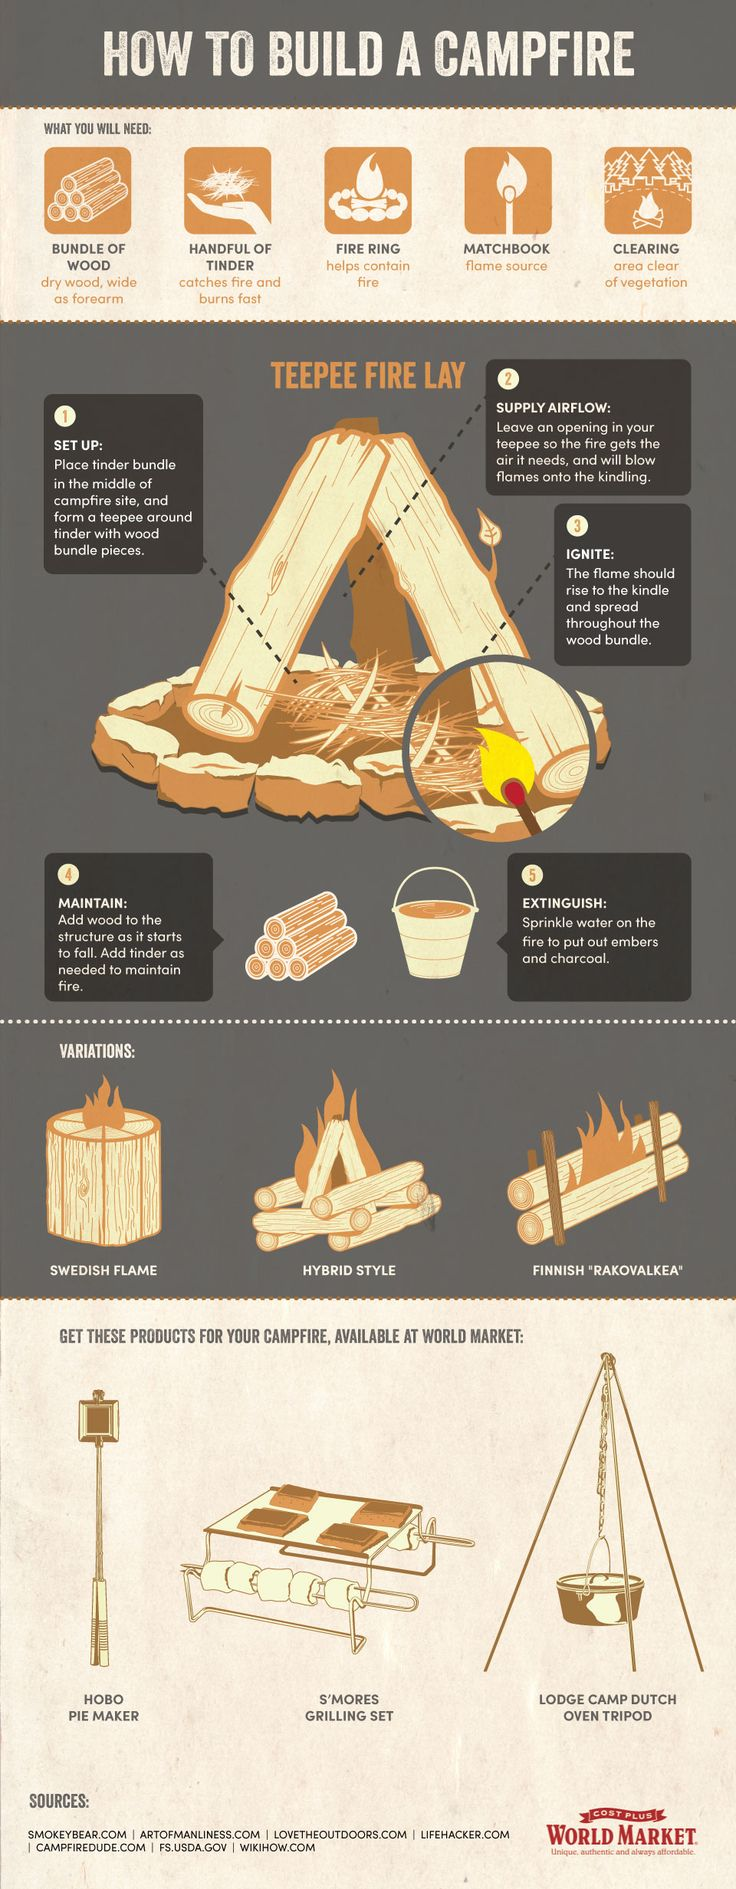 Impress your friends with our foolproof tips for lighting a smokin' hot campfire. Marshmallows not included. #DiscoverWorldMarket